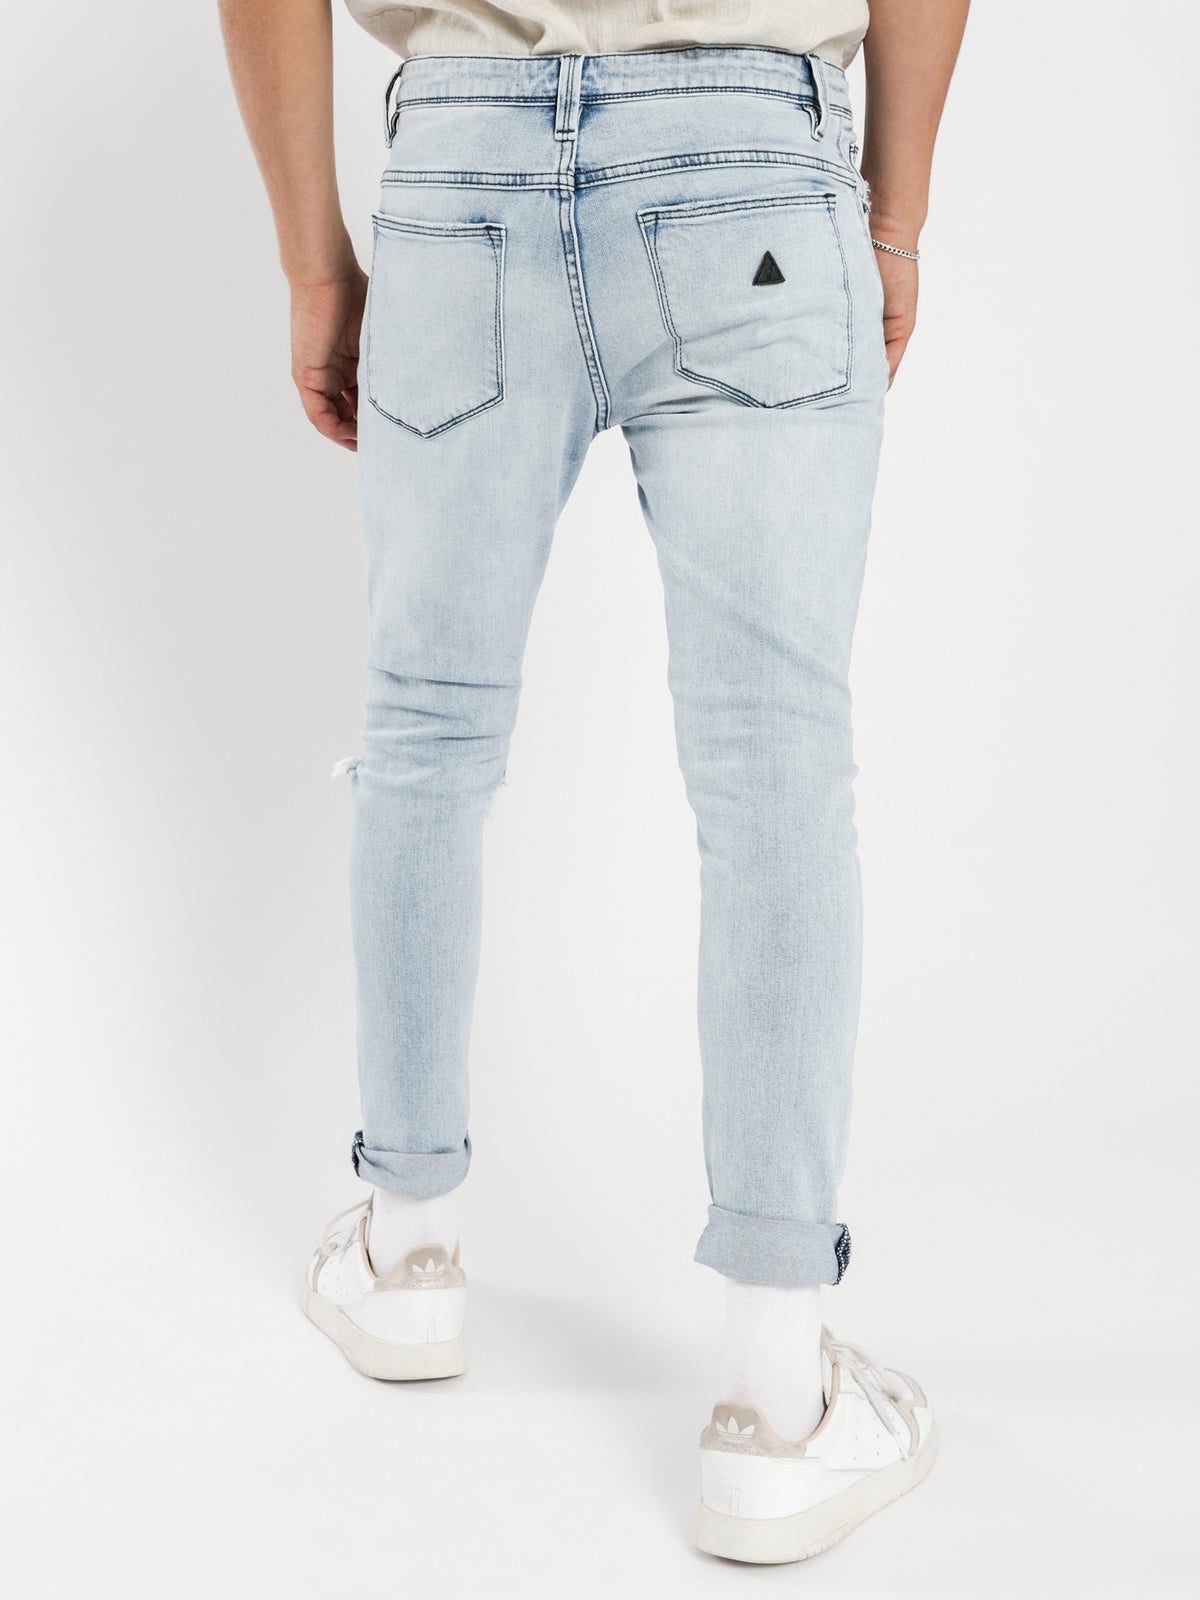 A Dropped Slim Turn Up Jeans Get Shaky Blue Denim